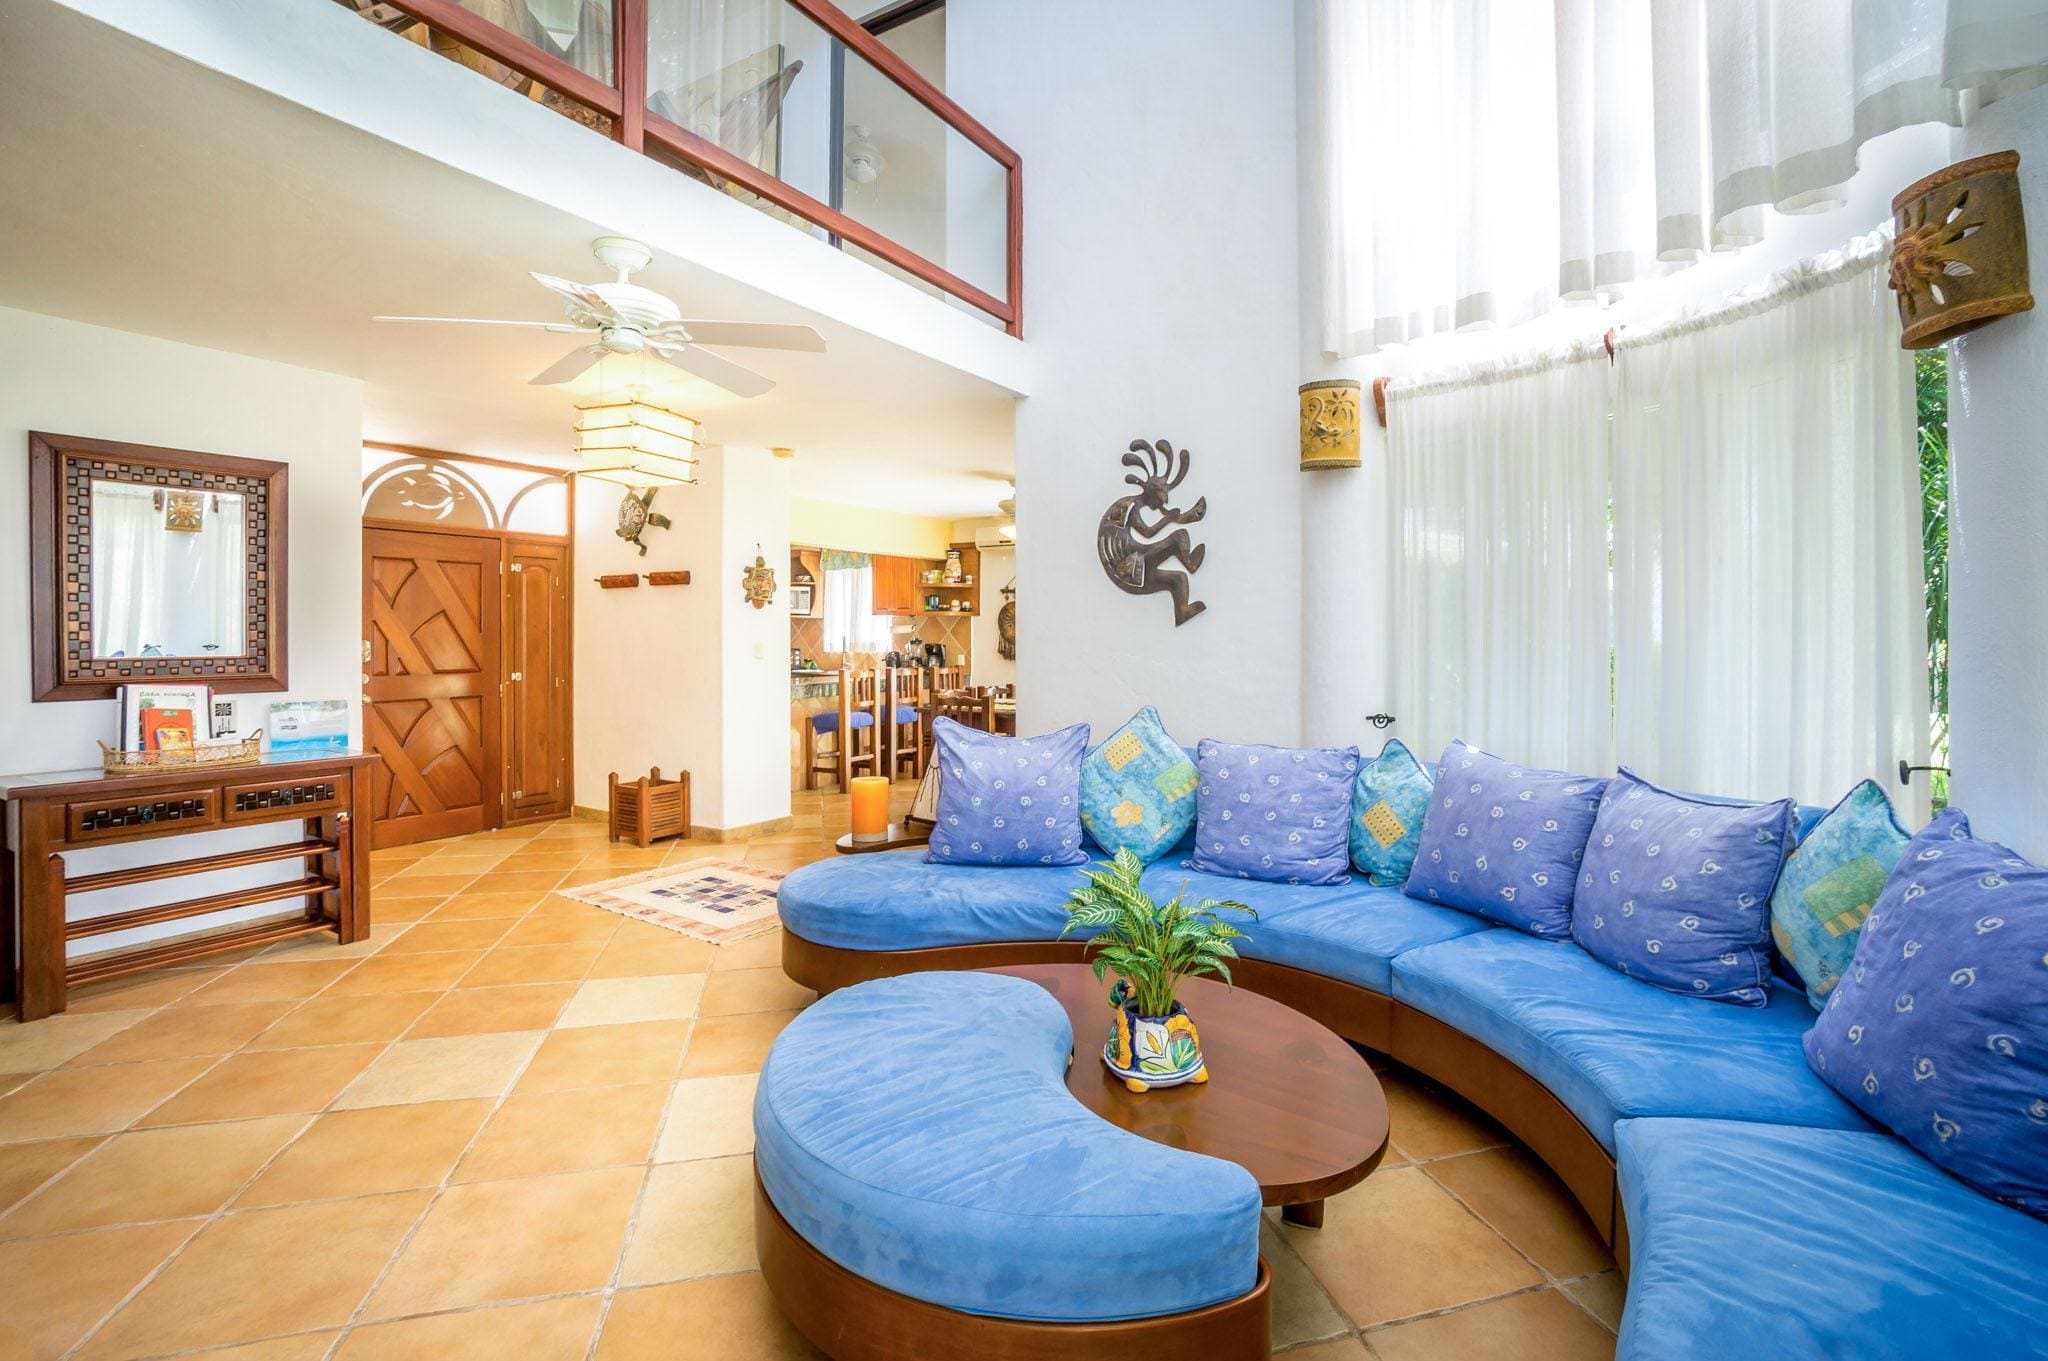 Awesome 3+ Bedroom, Private Home in Playacar Community